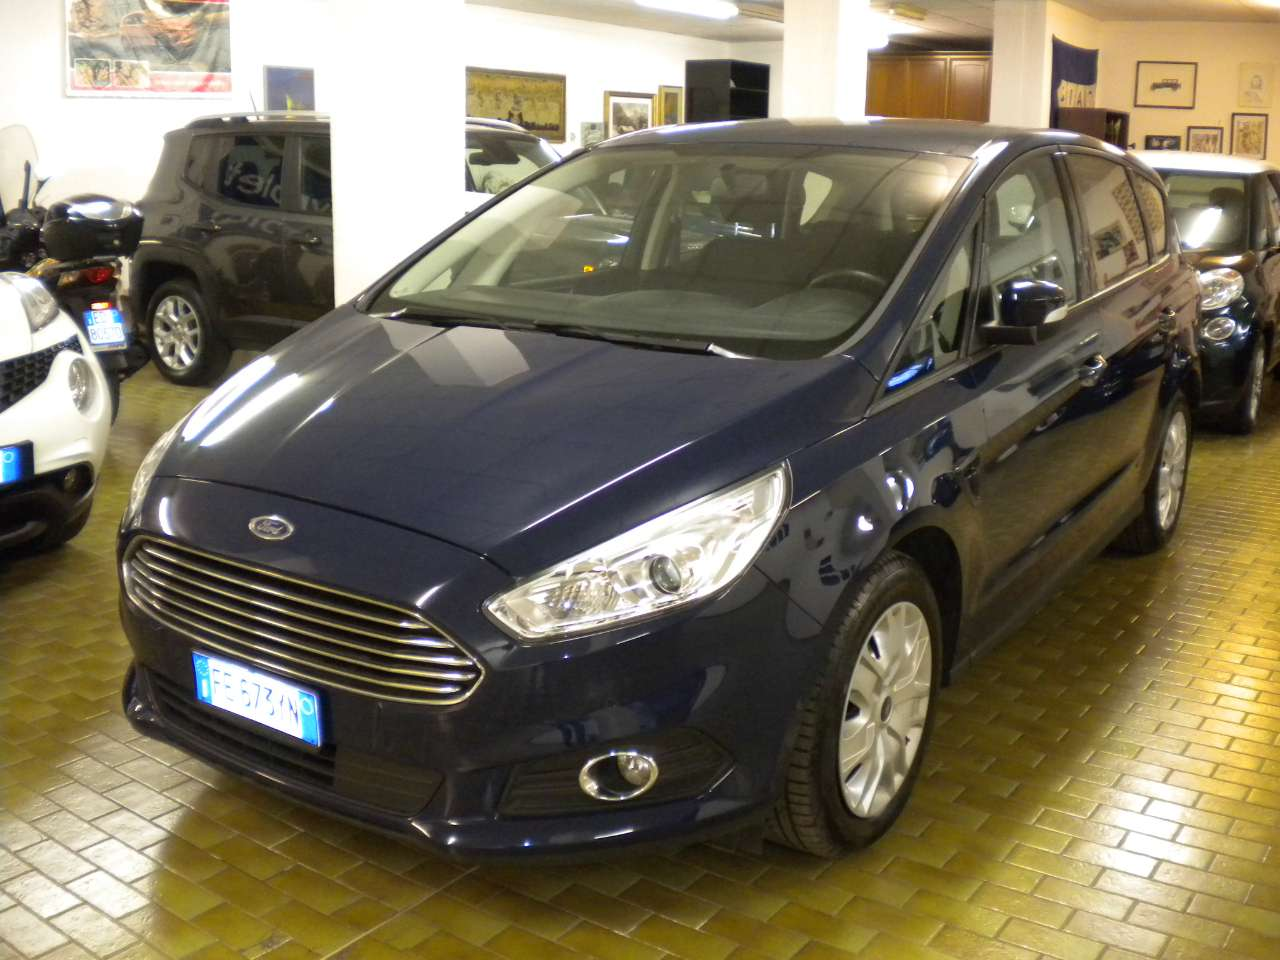 FORD S MAX (07/2016) - BLUE - lieu: